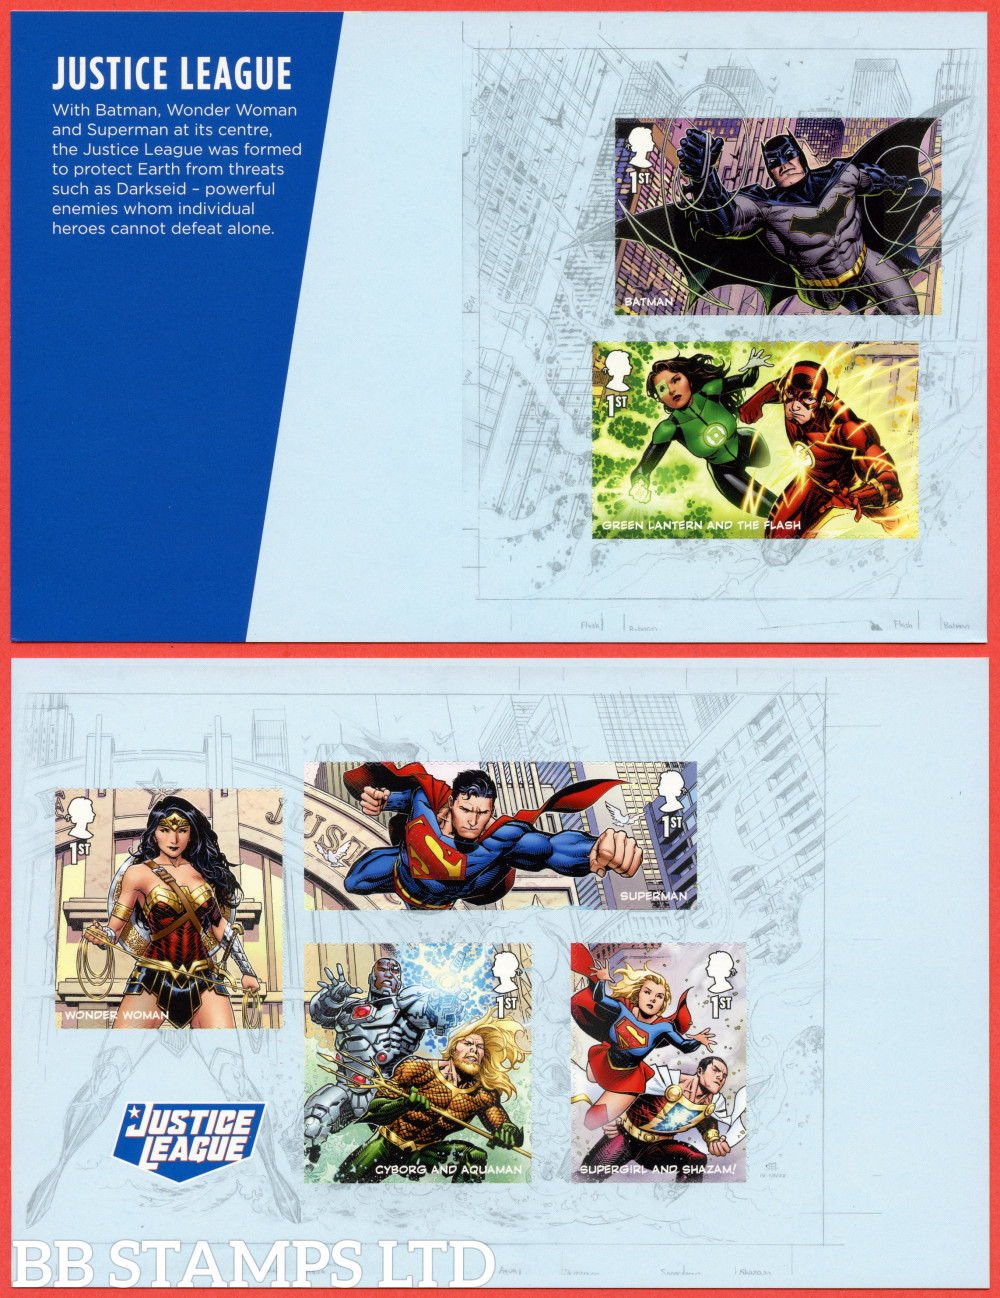 2021 DC Collection- Justice League Split M/S from DY40 (Panes 3/4) (6x1st as from Minisheet) (17.09.21)